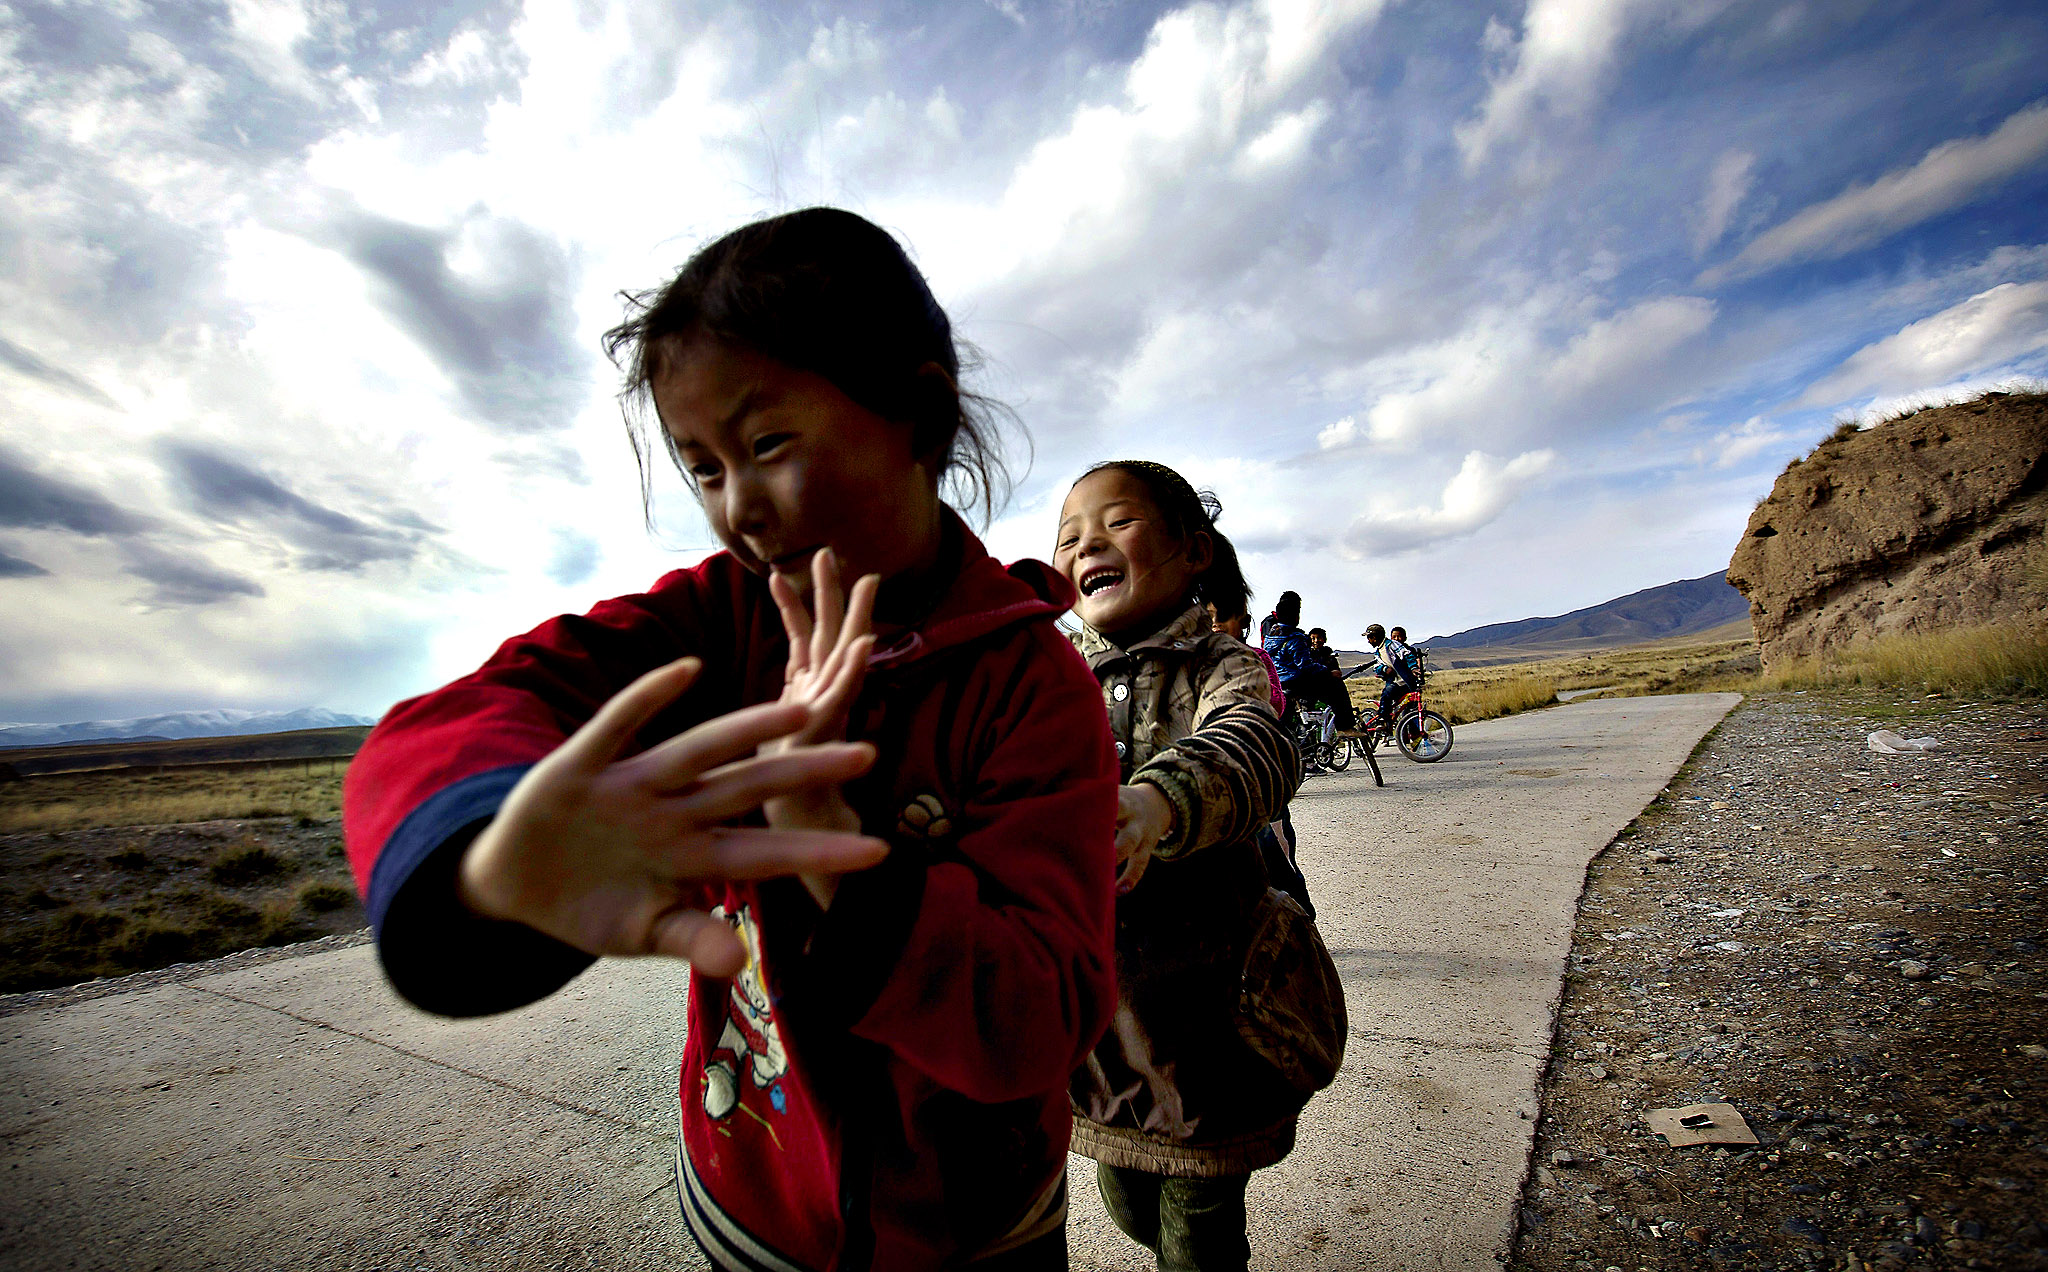 Tibetan children play near Bajiao village in the Ganjia Grasslands on the outskirts of Xiahe, Gansu Province, China Thursday, Oct. 17, 2013. Bajiao village, known as Karnang in Tibetan, is an ancient village, which is believed to be roughly 2,000 years old and is surrounded by a 12-sided city wall.